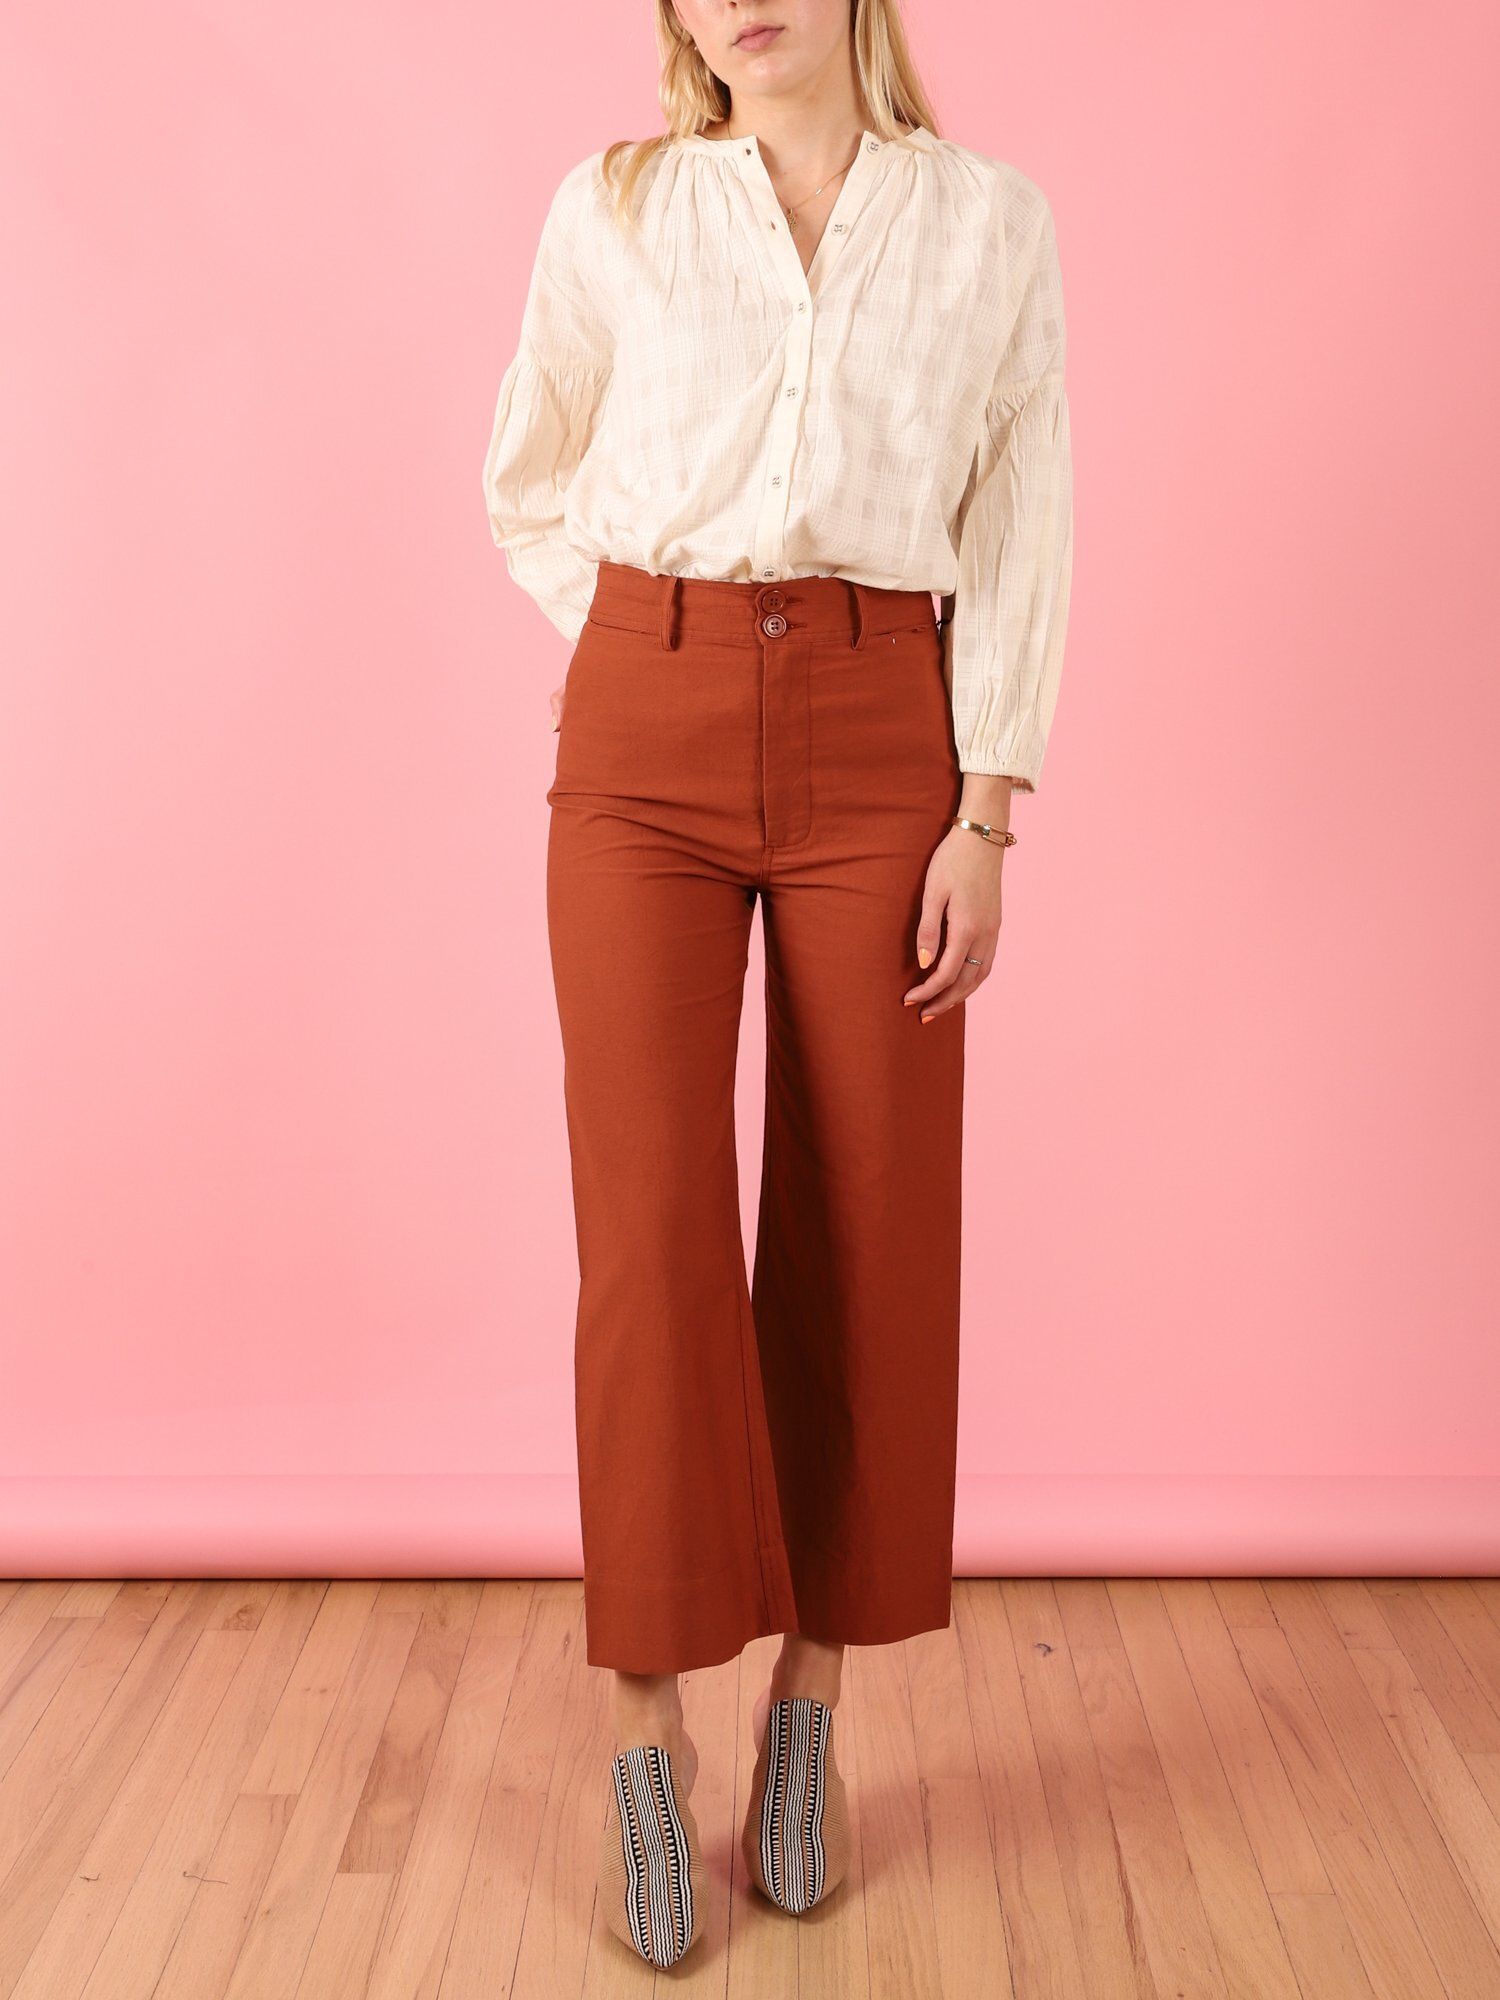 Cabana Canary Merida Pants ($295) - Nothing against straight and skinny cuts, but nothing beats a good wide-leg silhouette. While we're admittedly obsessed with everything at this Bluffview boutique, these on-point copper pants would look great with everything in our autumnal rotation.